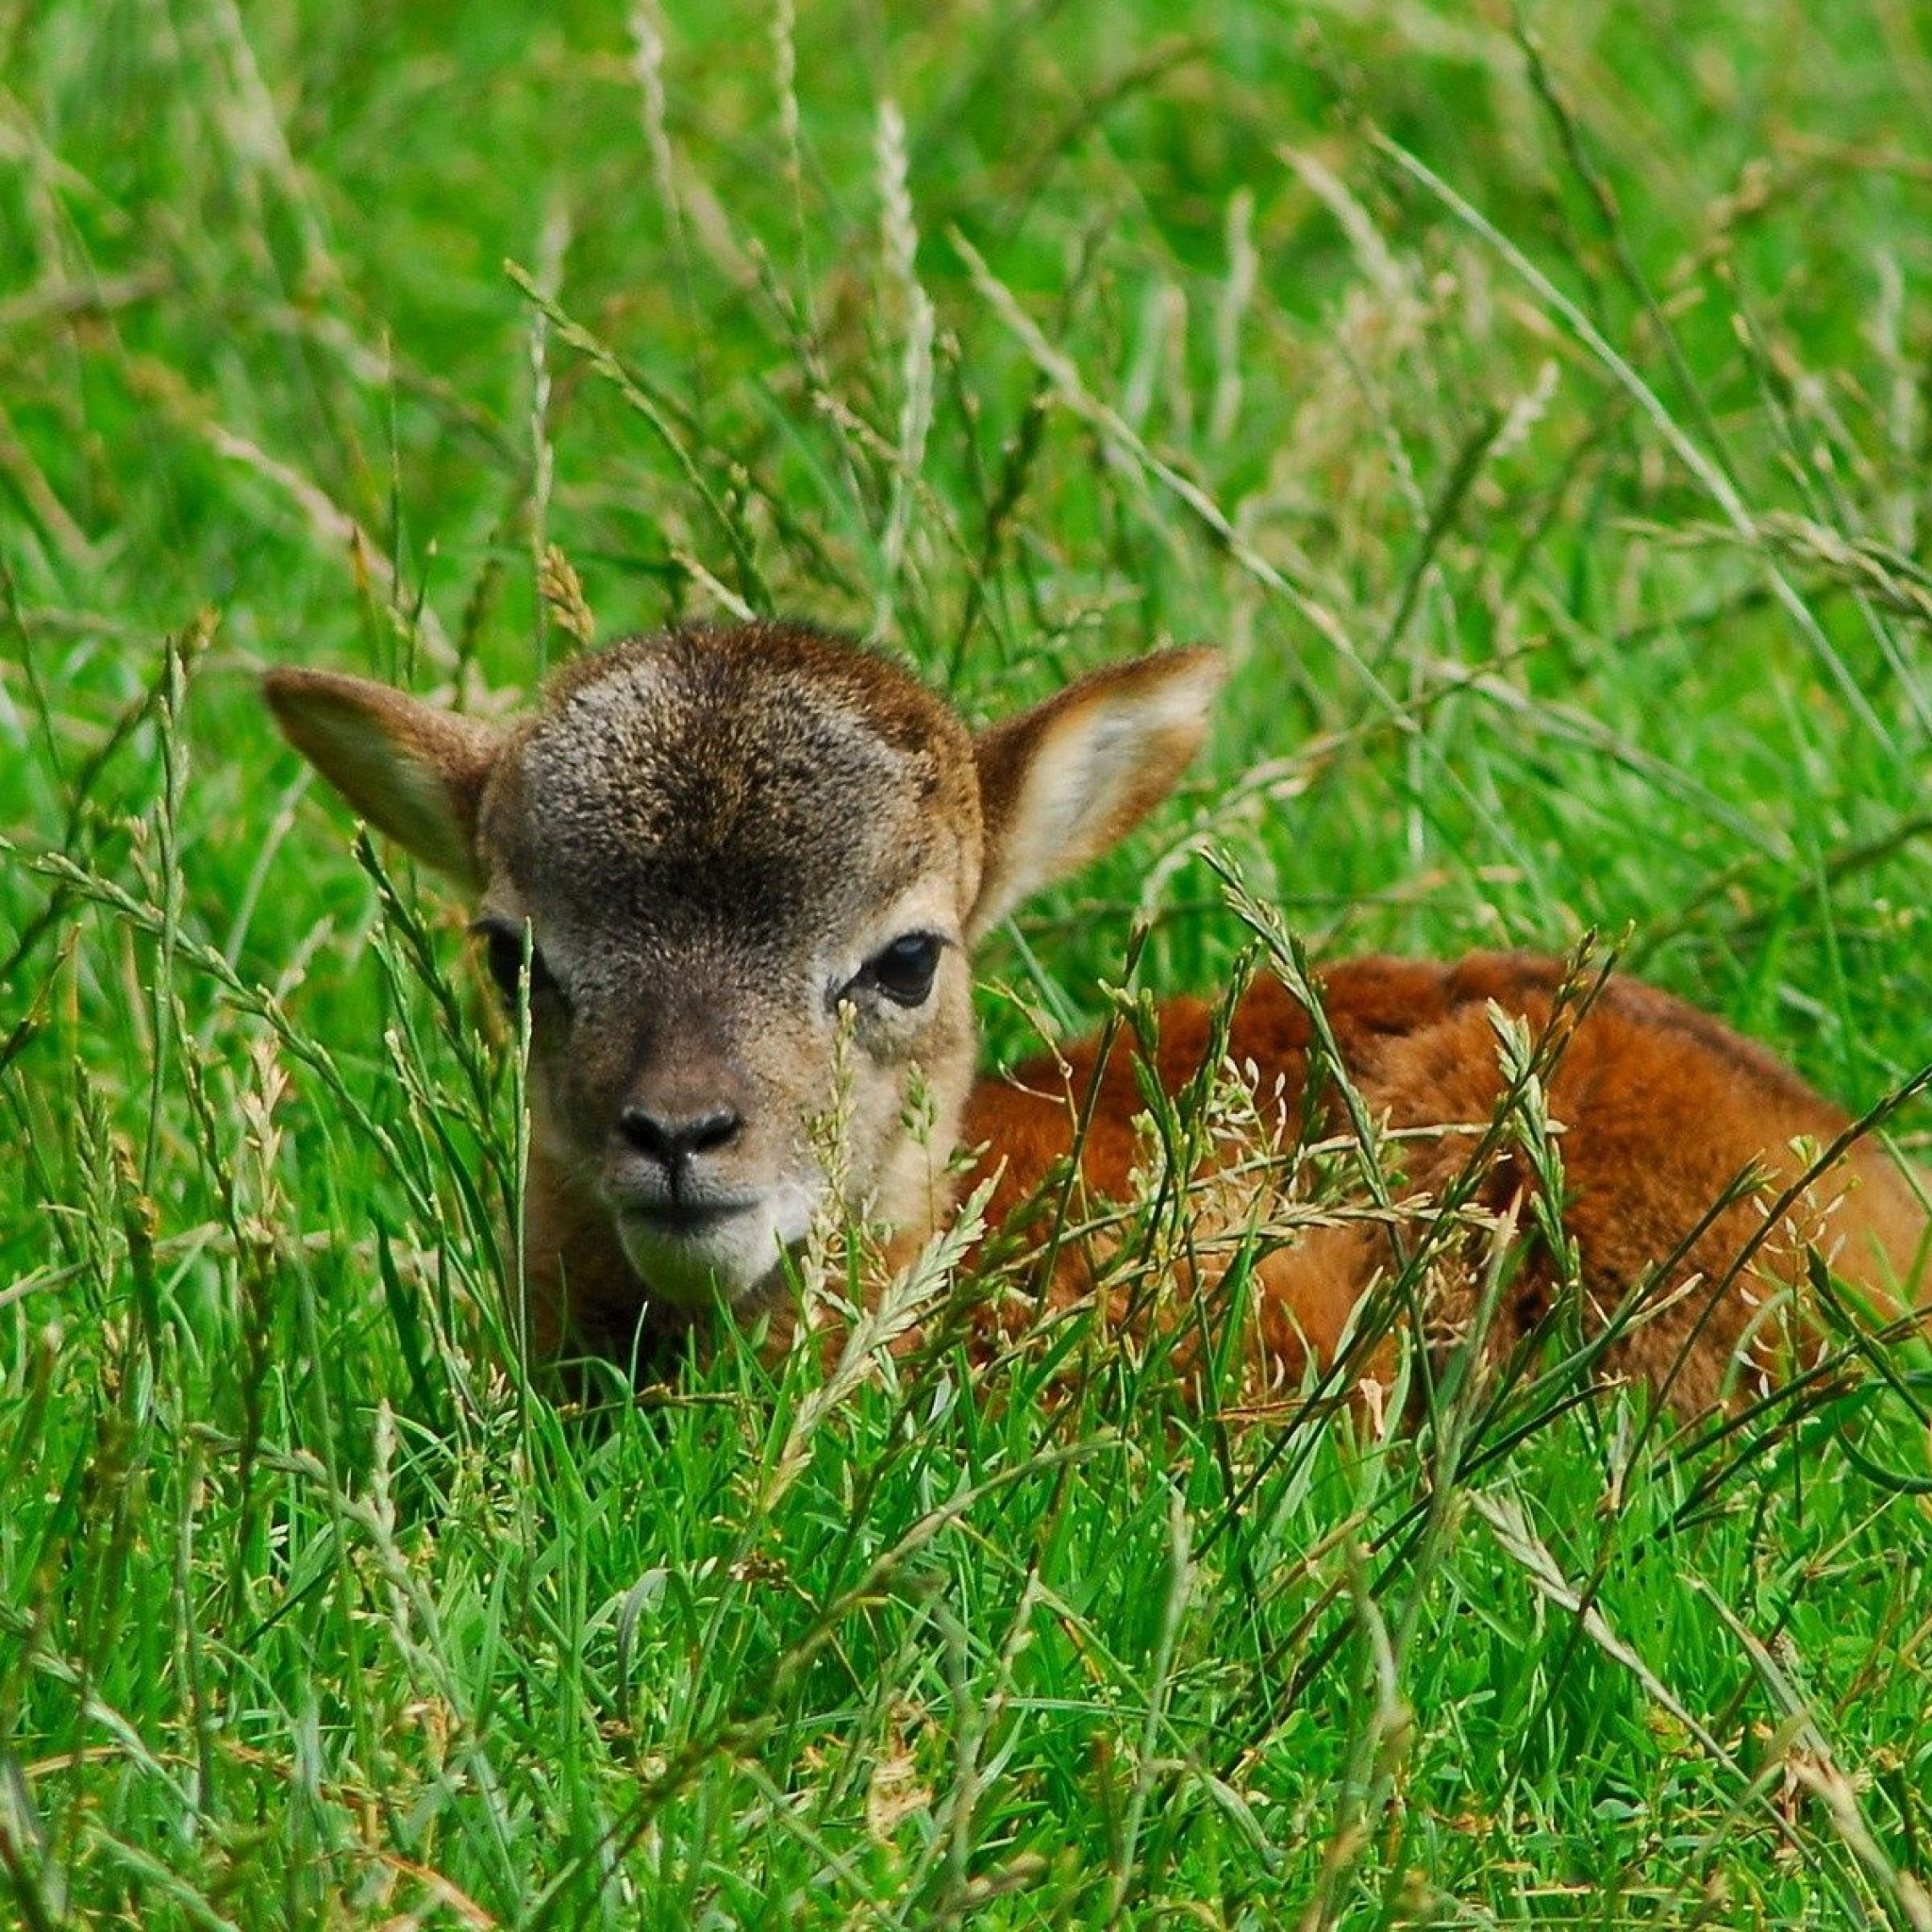 Baby Deer Wallpaper wallpaper wallpaper hd background desktop 2048x2048